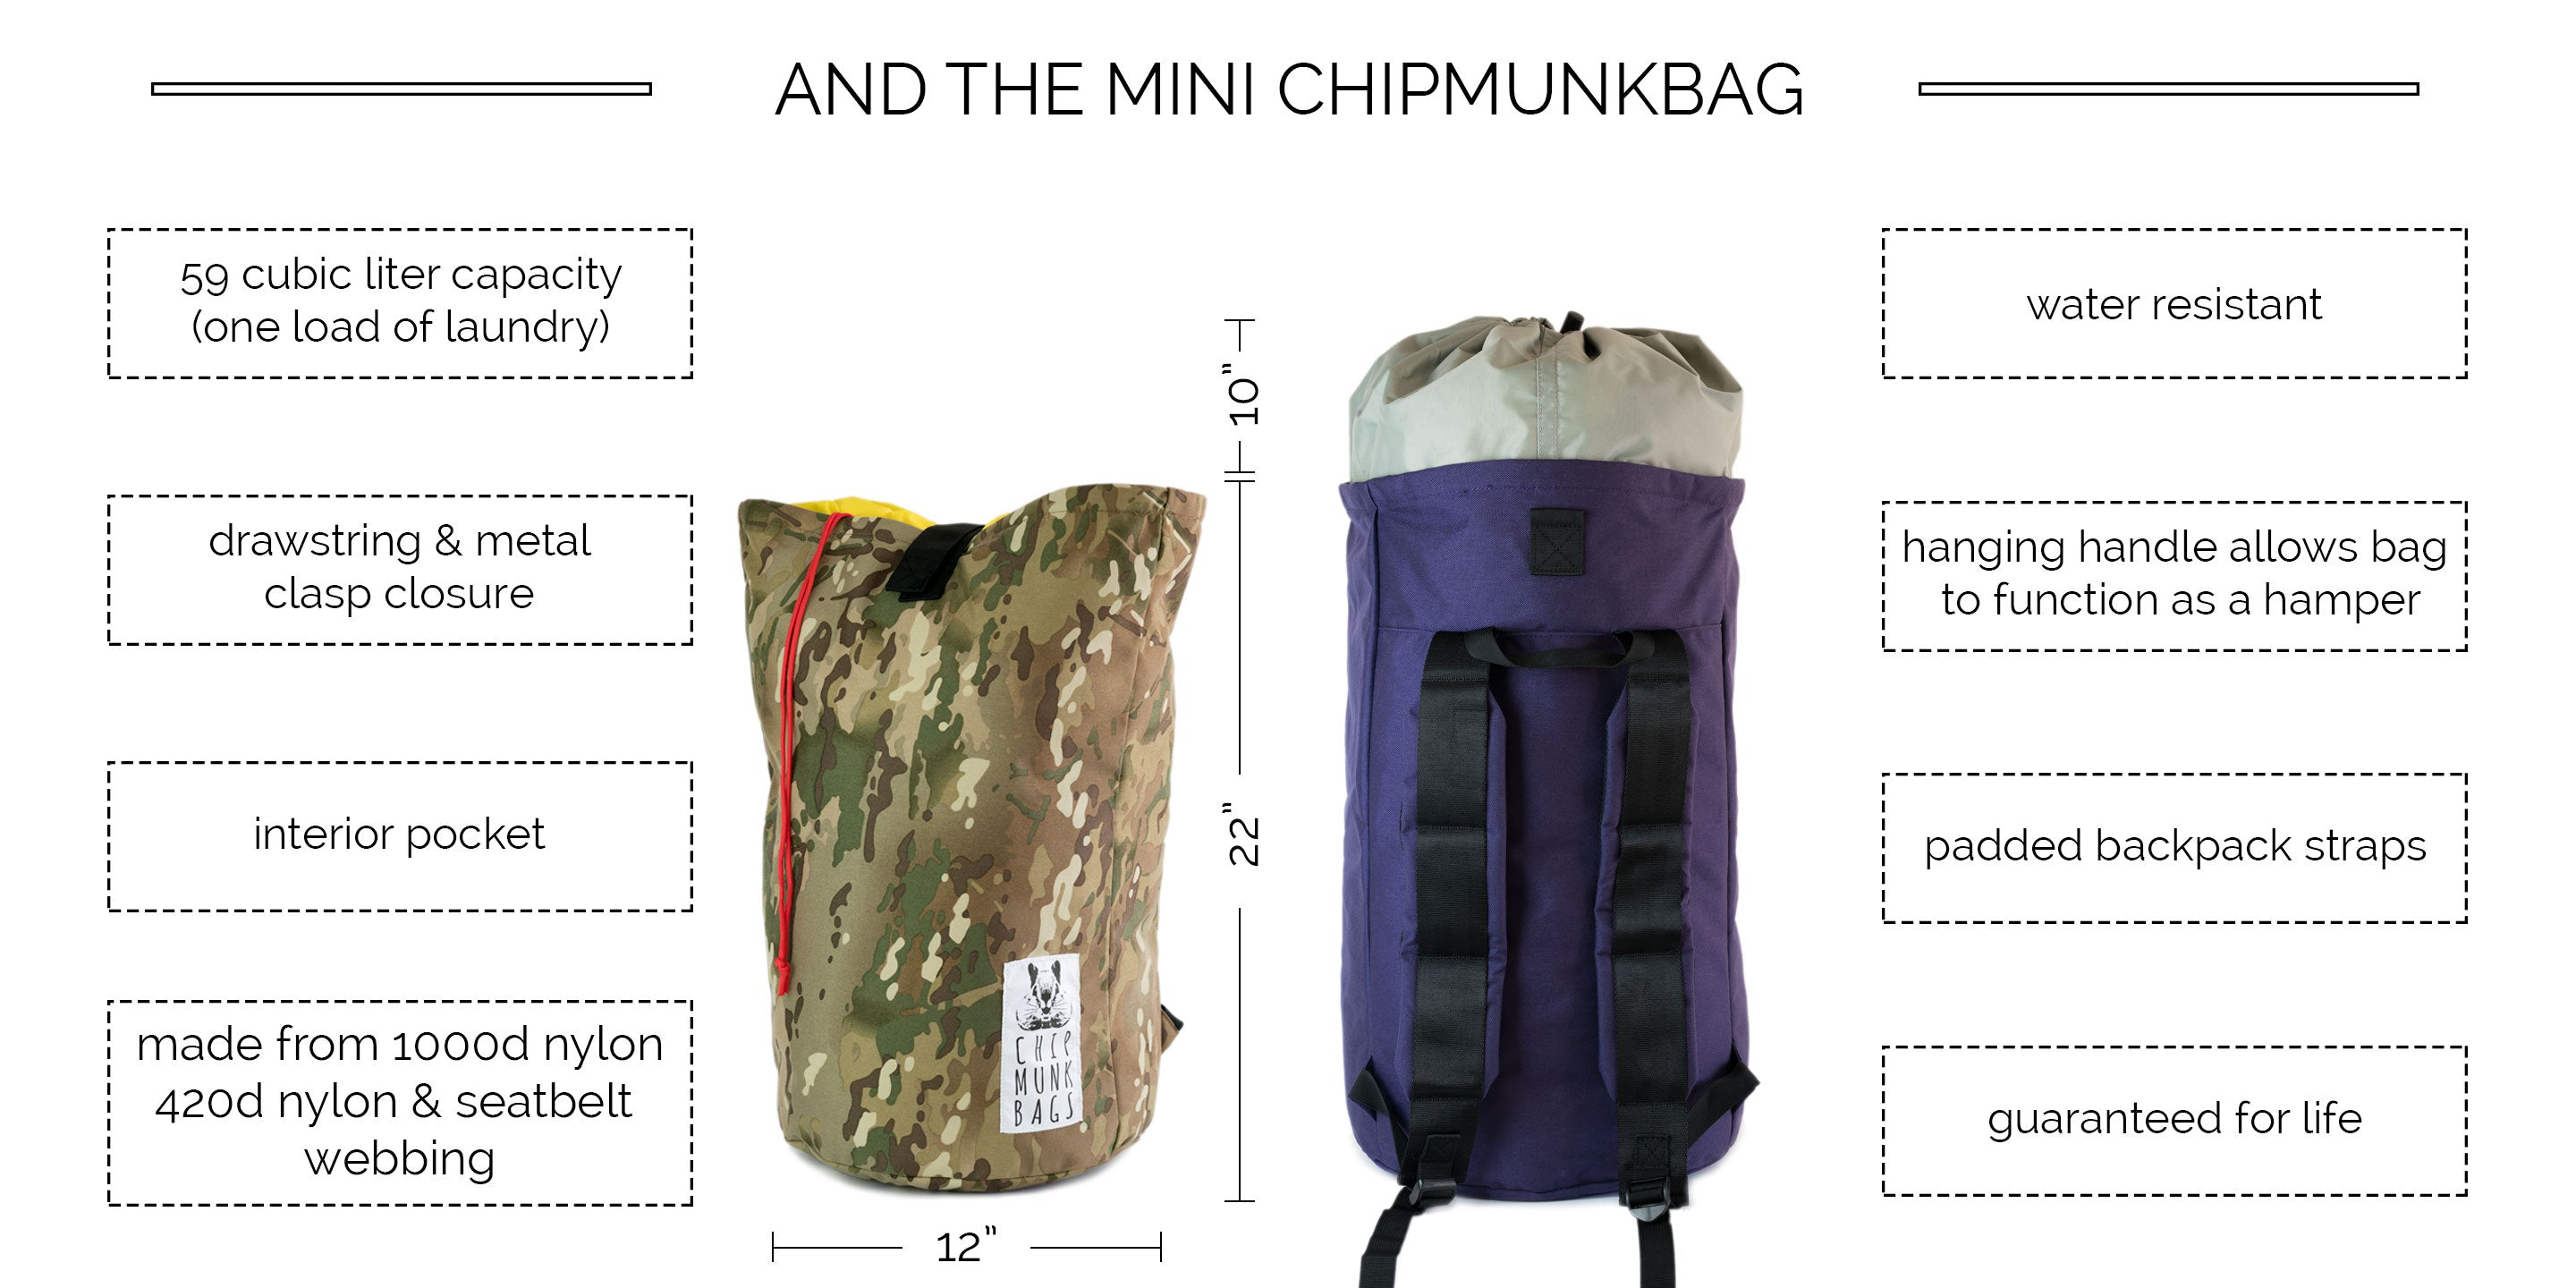 The Mini ChipmunkBag Laundry Bag Description